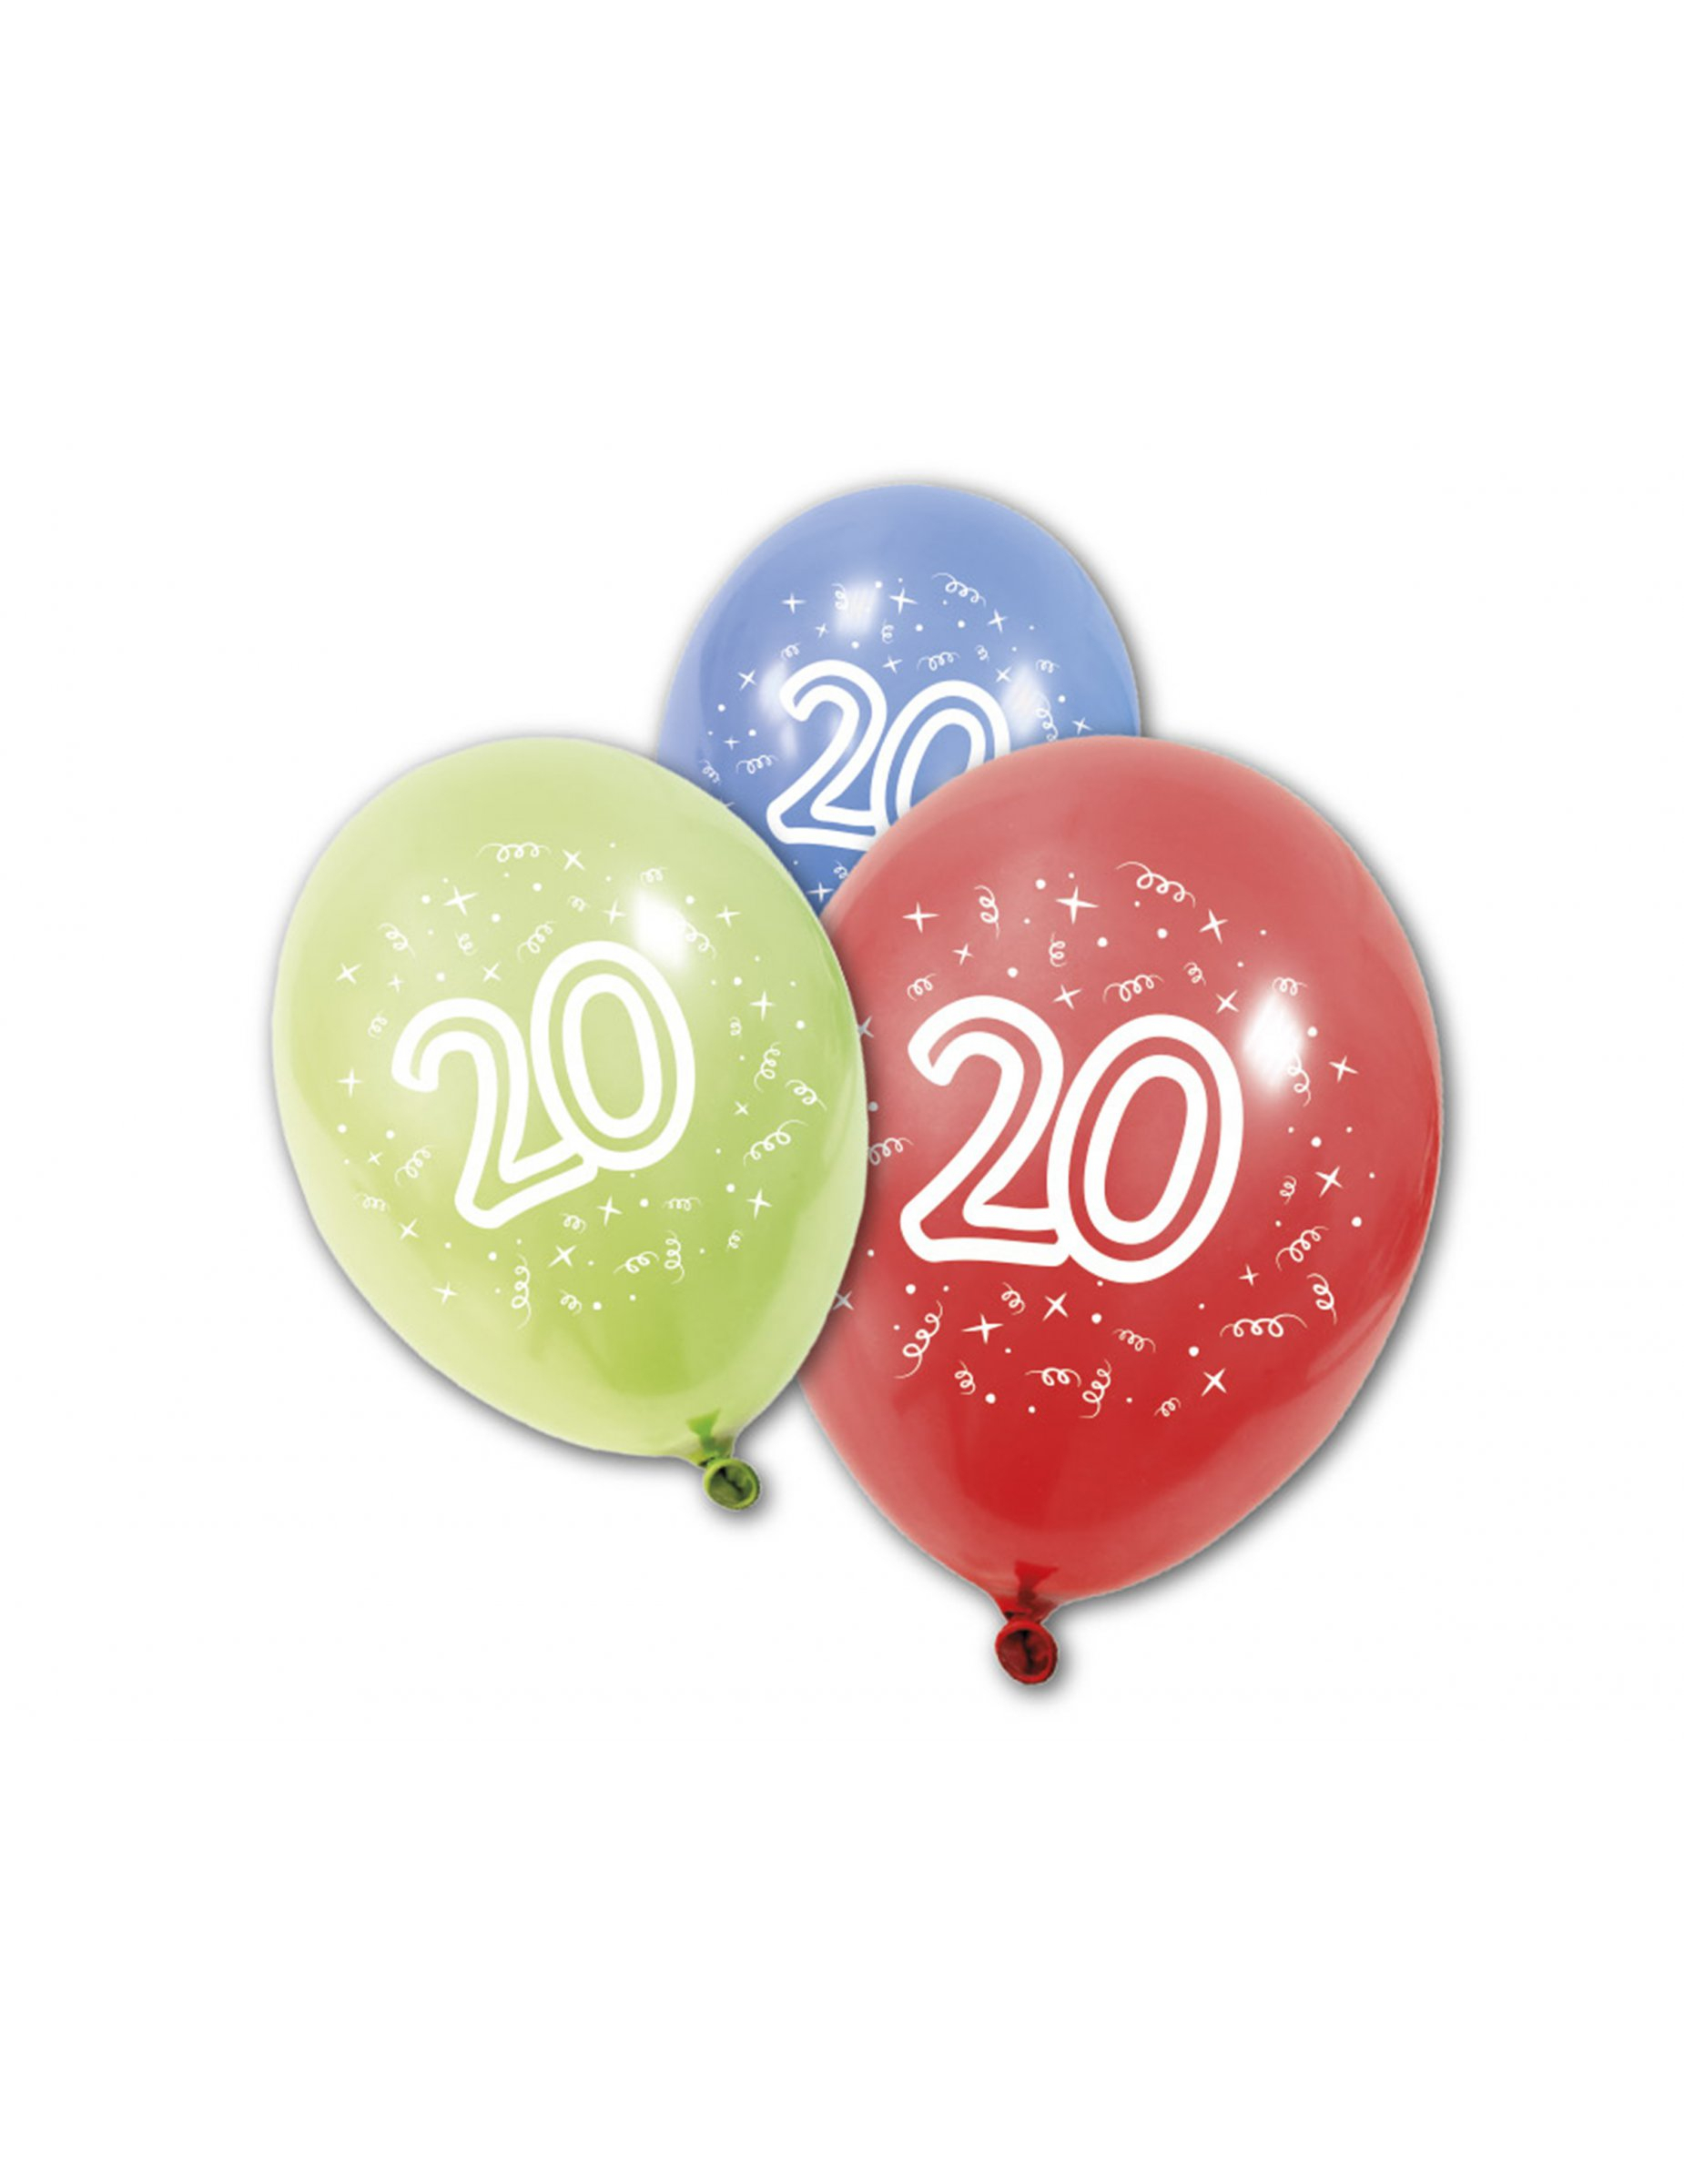 8 ballons anniversaire 20 ans achat de decoration animation sur vegaoopro grossiste en. Black Bedroom Furniture Sets. Home Design Ideas